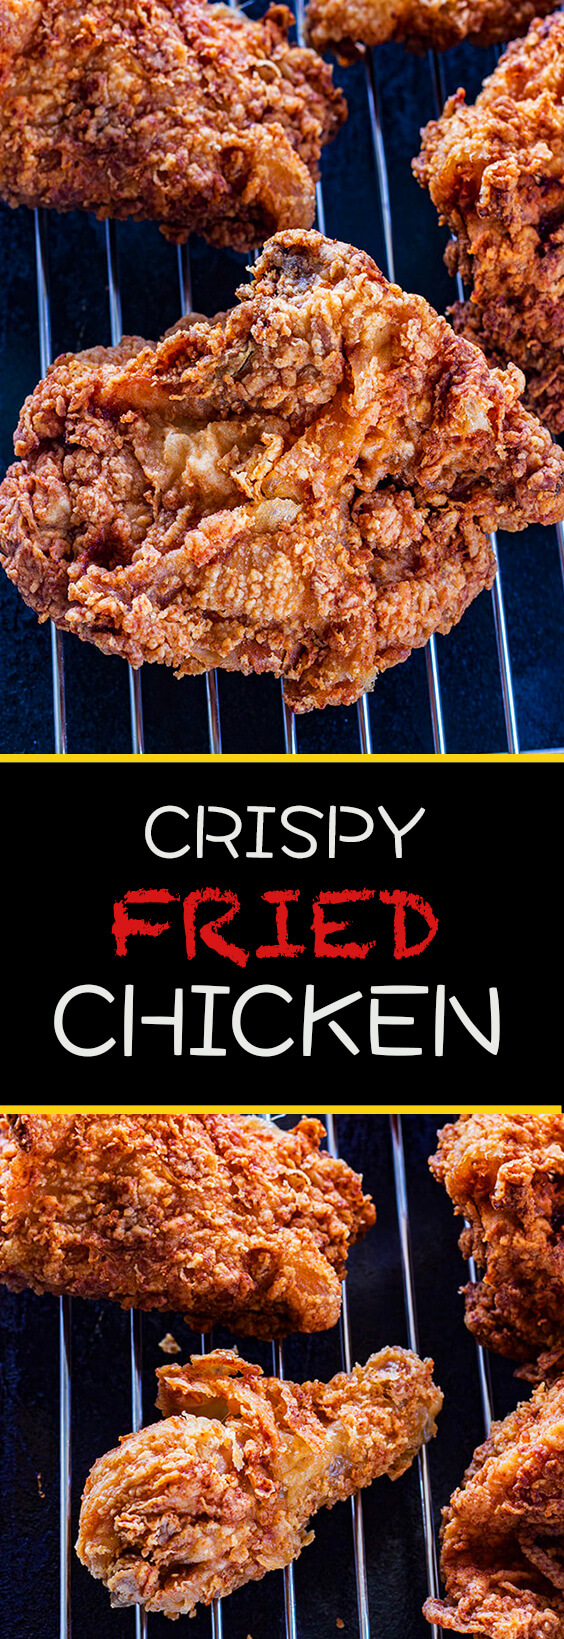 This crispy fried chicken recipe is a picnic favorite. Easy enough for weeknight dinners or Sunday get togethers. Wonderfully crisp and perfectly seasoned. Make it and love it!